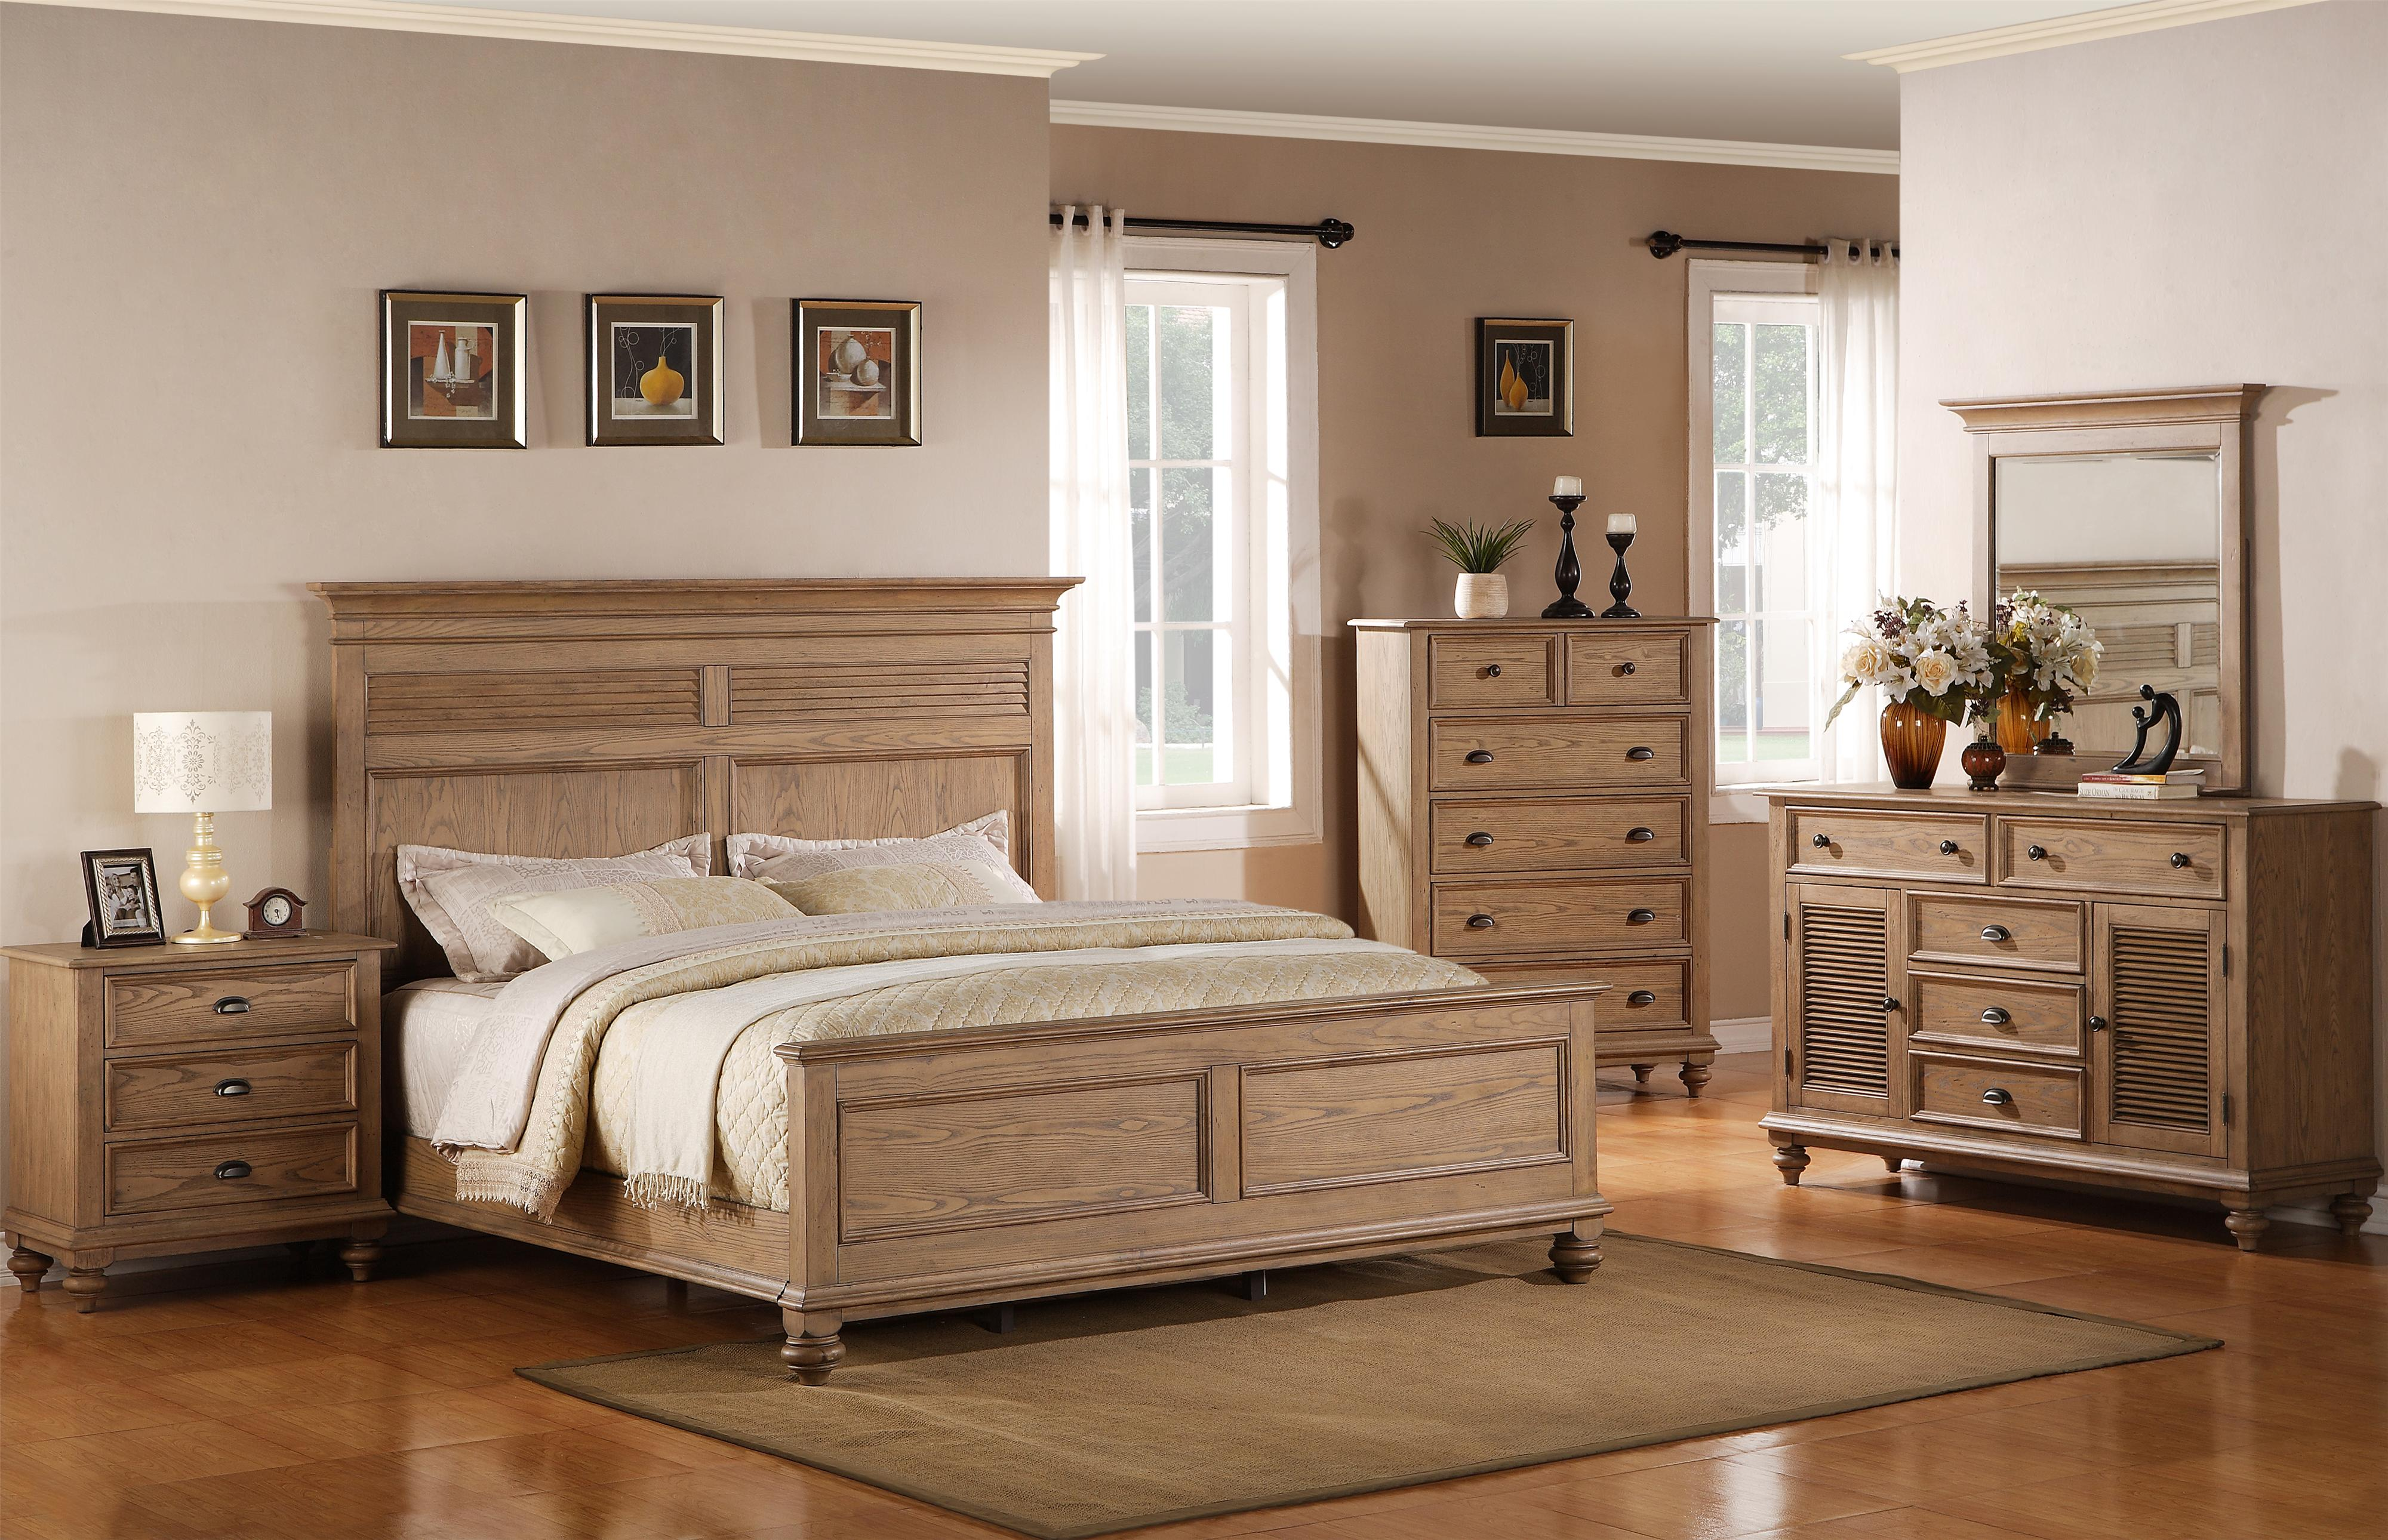 Riverside Furniture Coventry King Bedroom Group - Item Number: 32400 K Bedroom Group 2